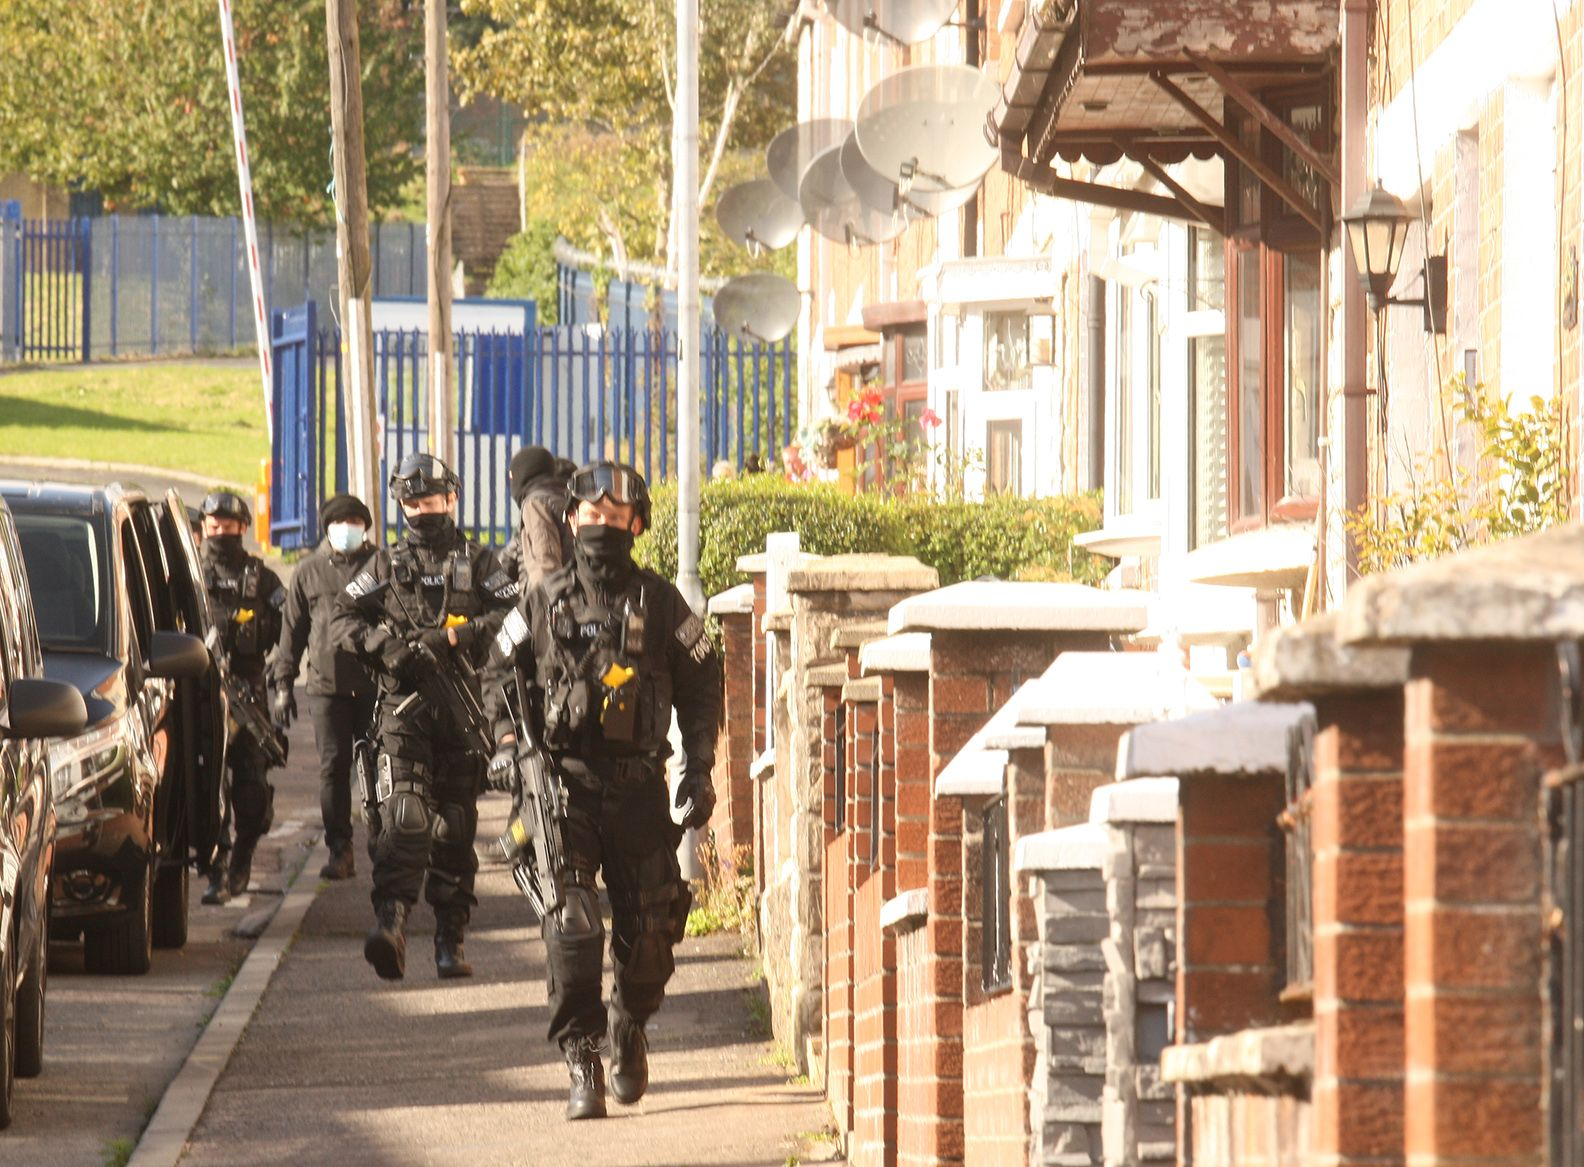 CAMERA, ACTION: Our photographer Thomas McMullan was on hand as this scene in Line of Duty developed in Beechmount on Monday